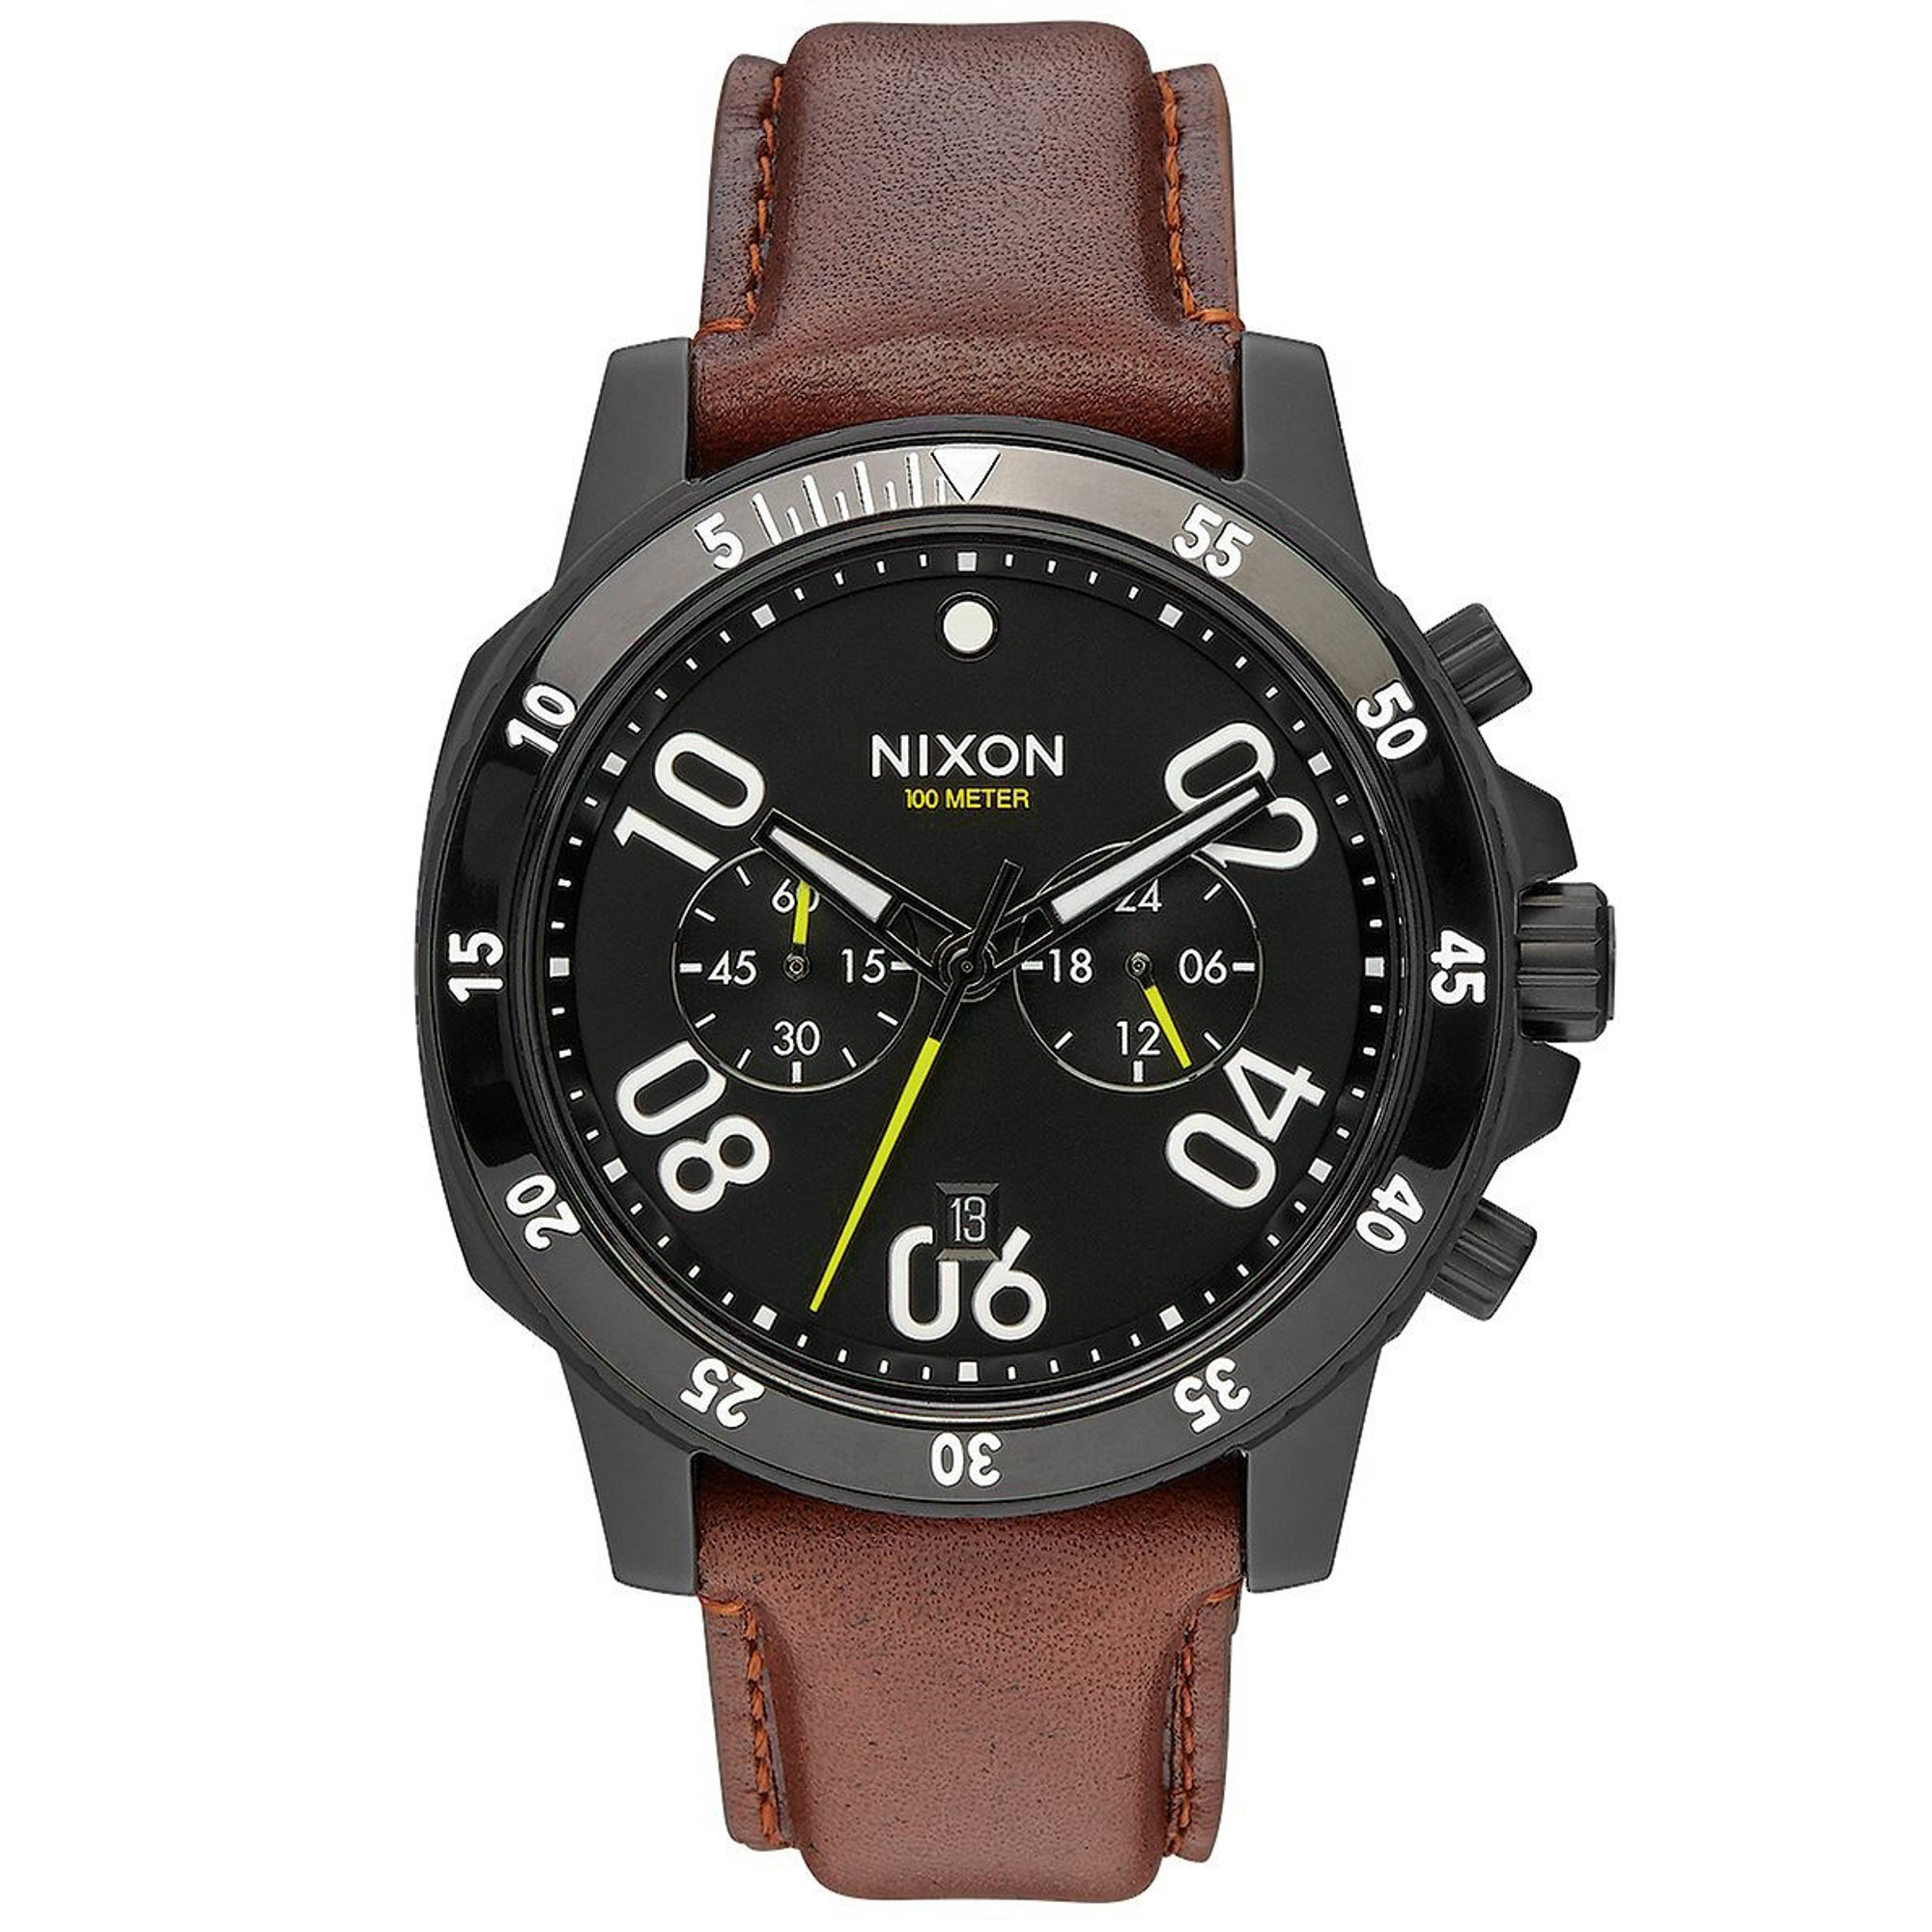 NIXON Ranger Chrono Leather Herrenuhr A940-712